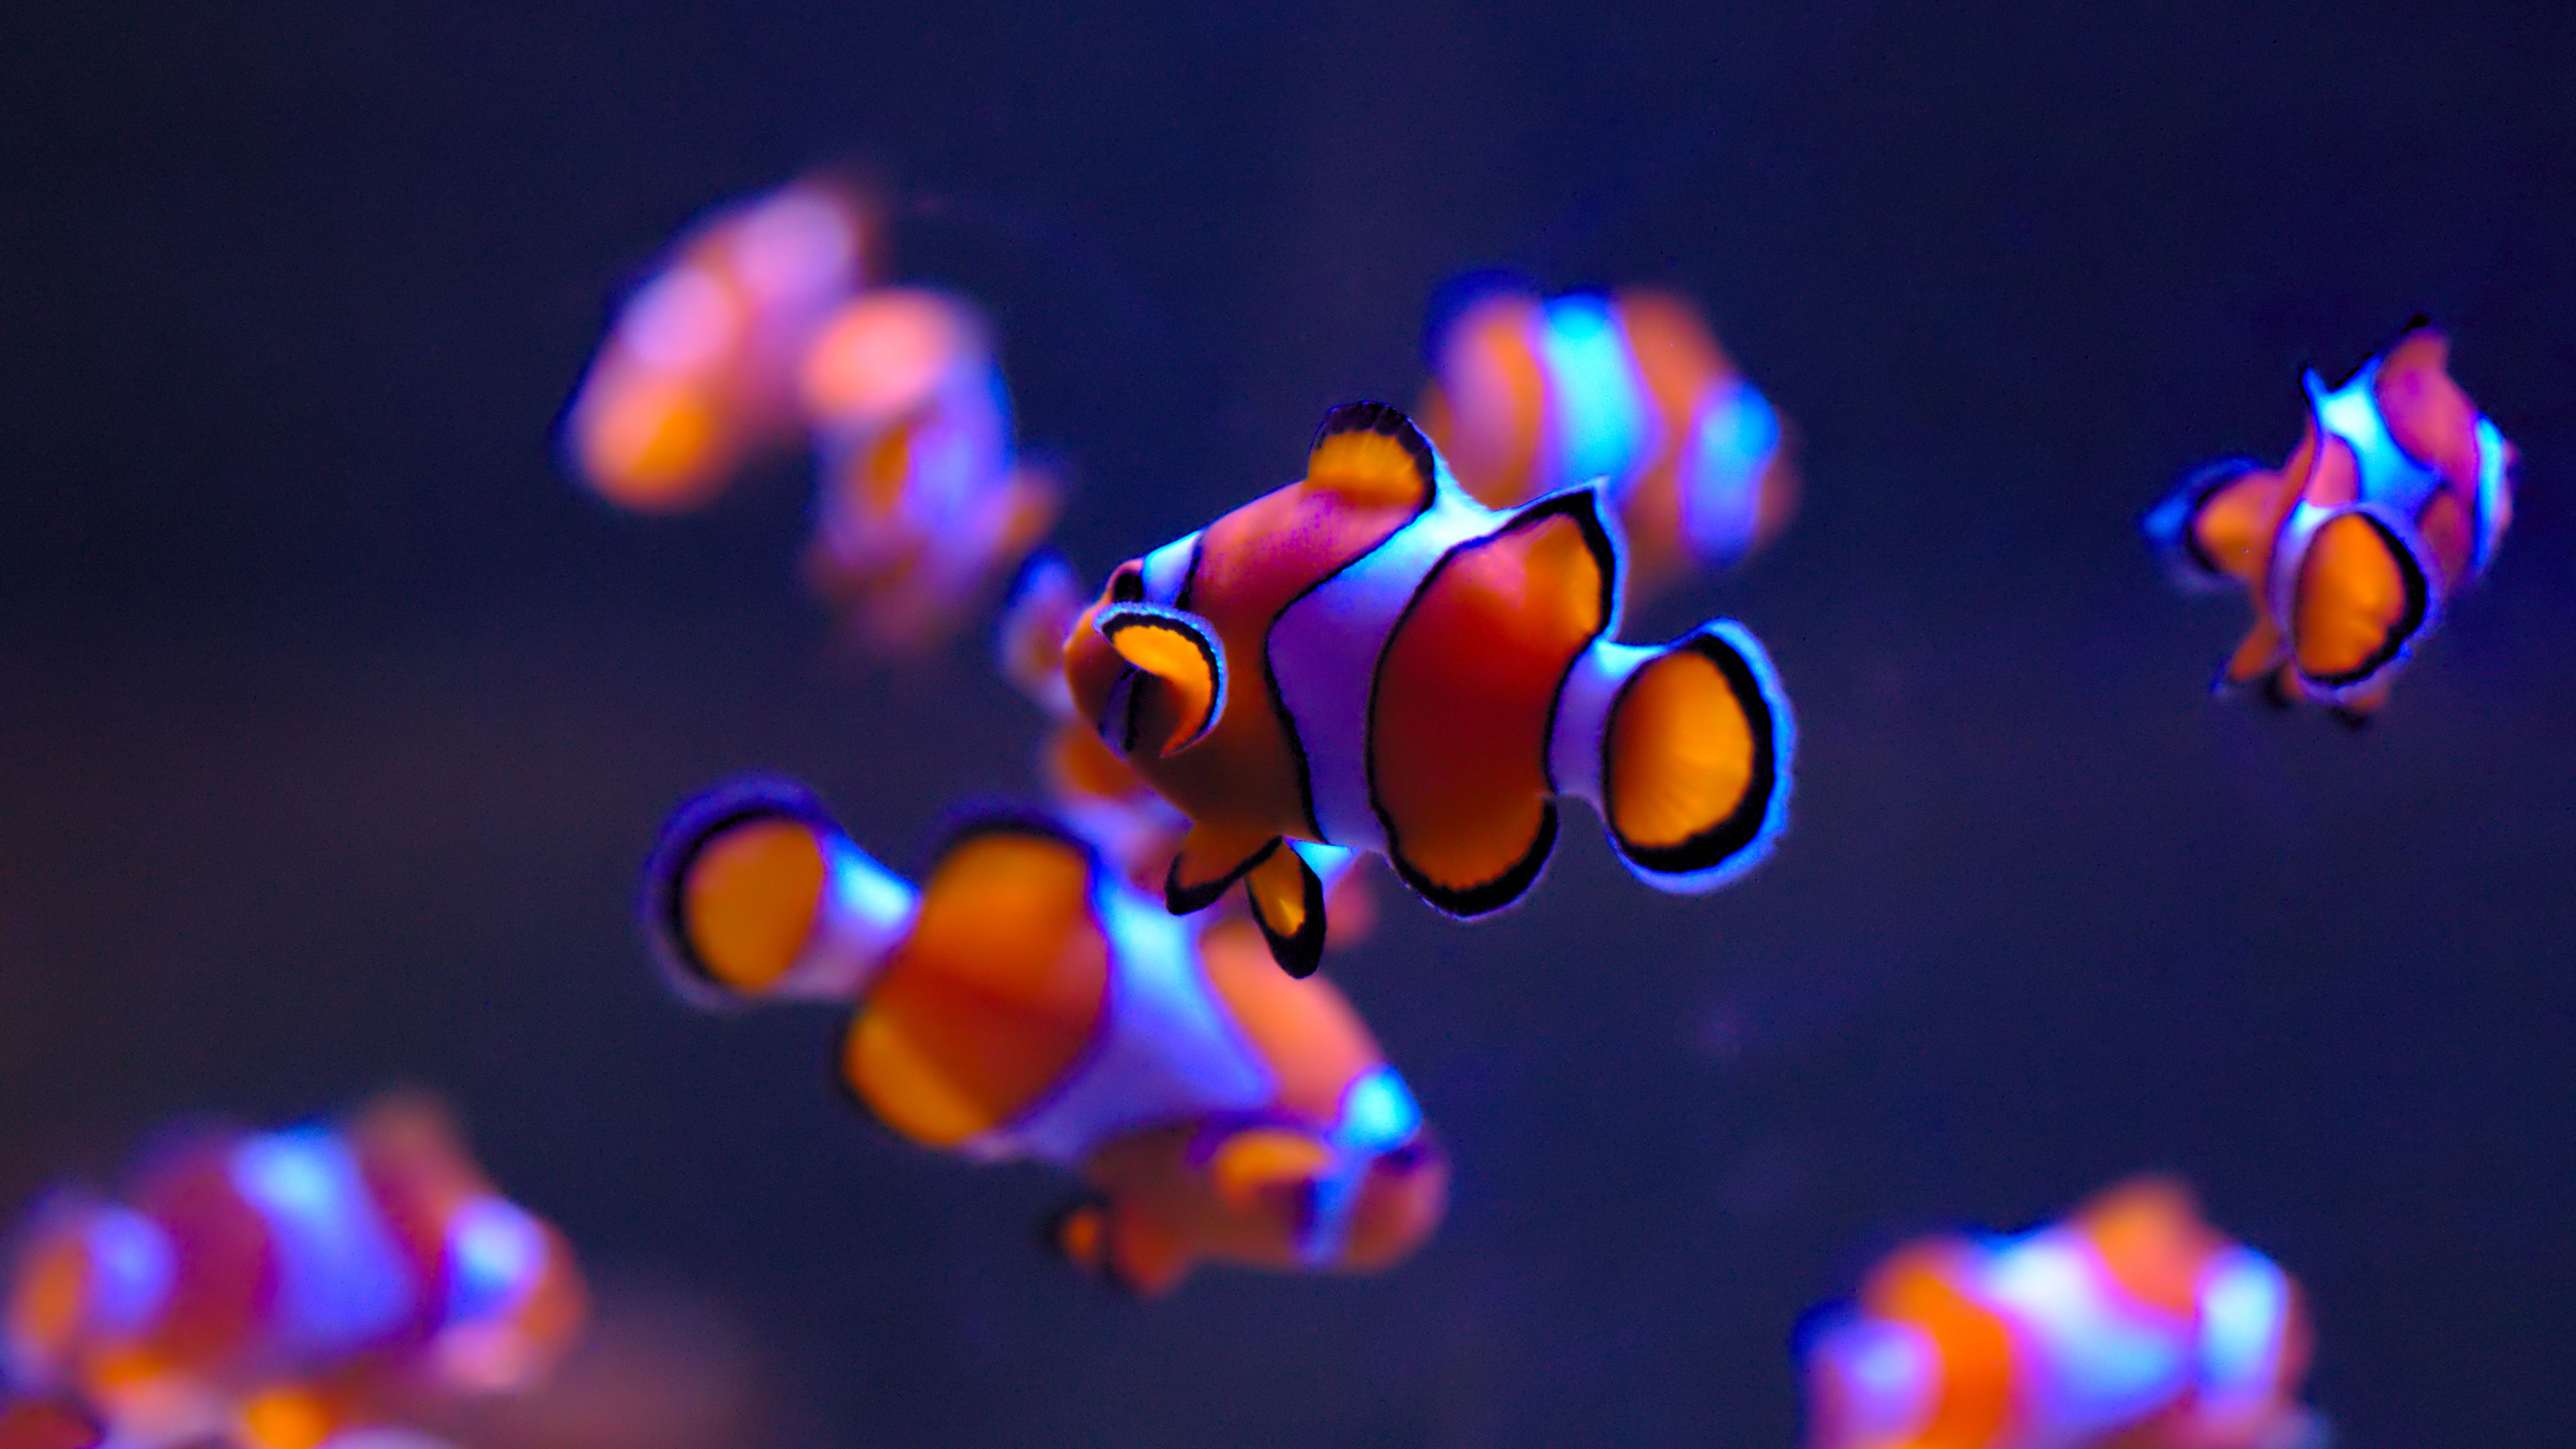 General 3840x2160 Ultra Hd Fish Clownfish Underwater With Images